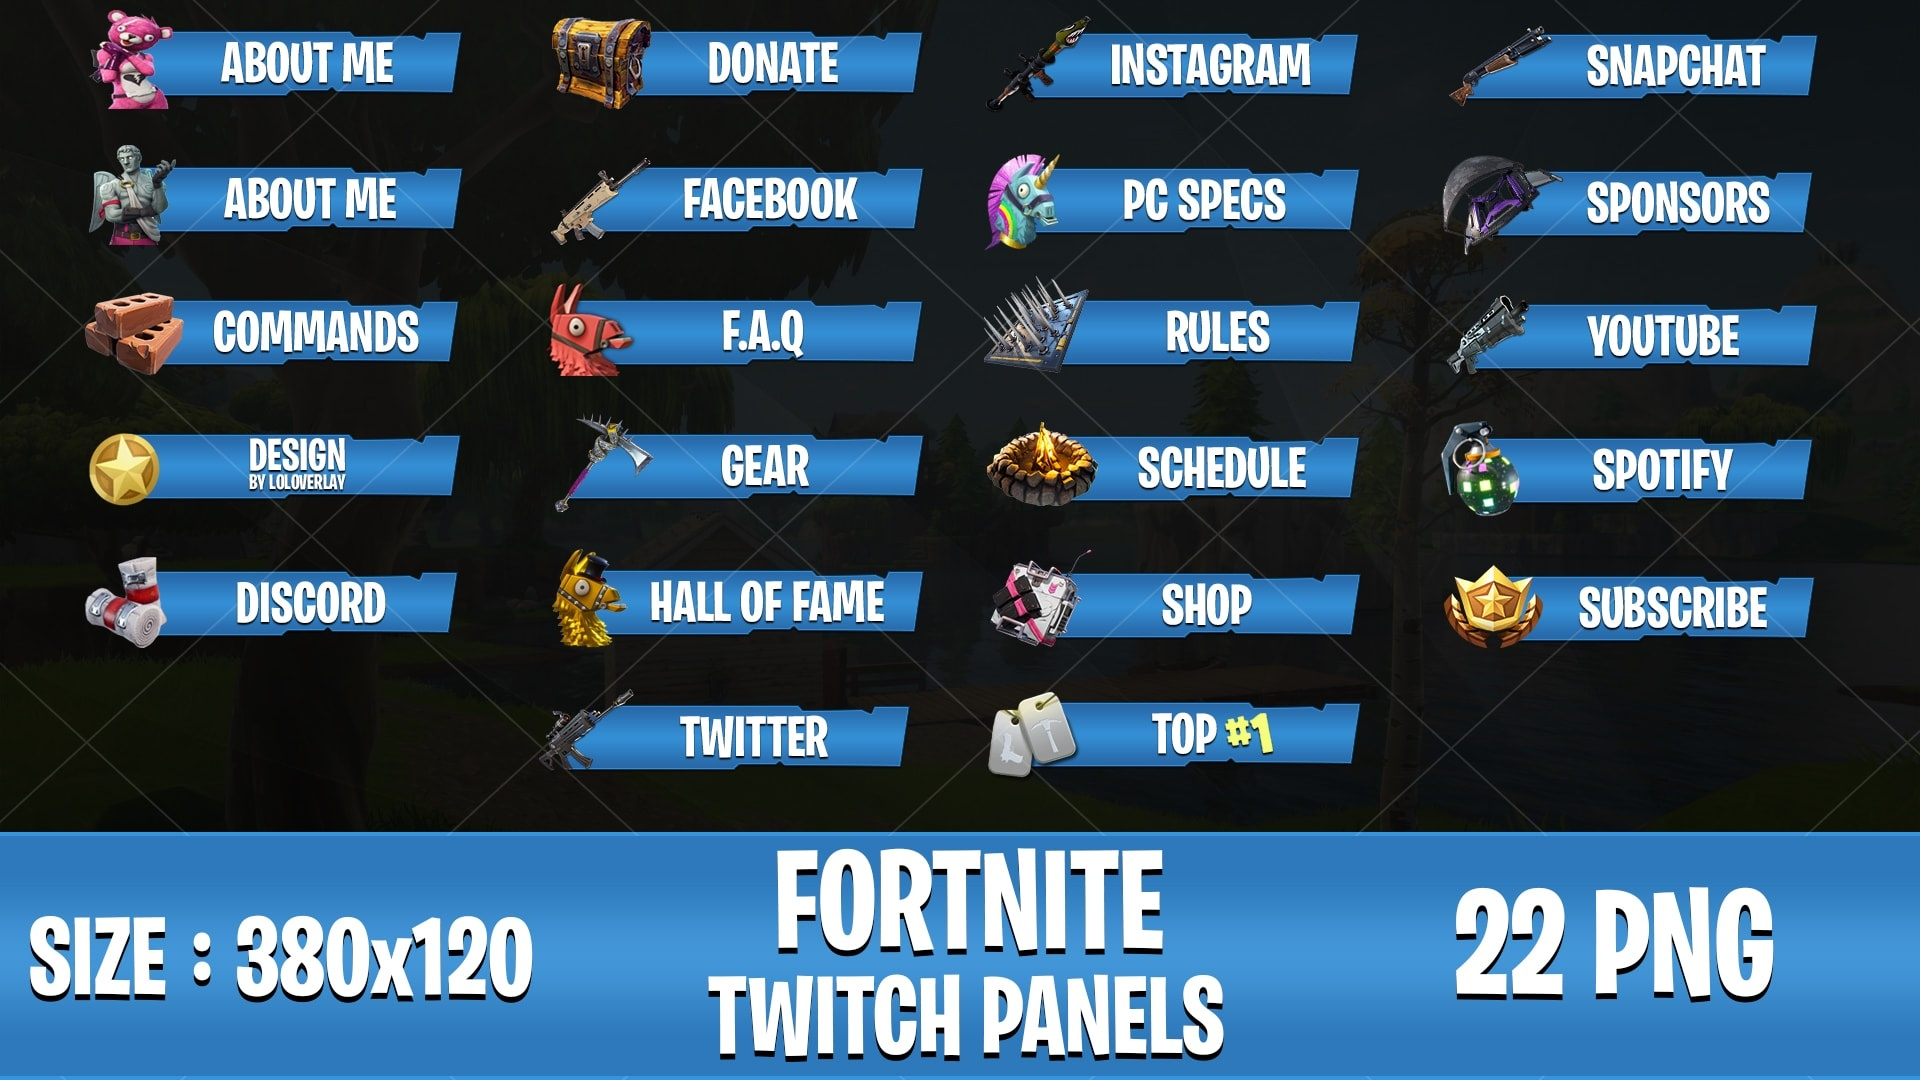 [BLUE] FORTNITE - TWITCH PANELS (22 PNG)